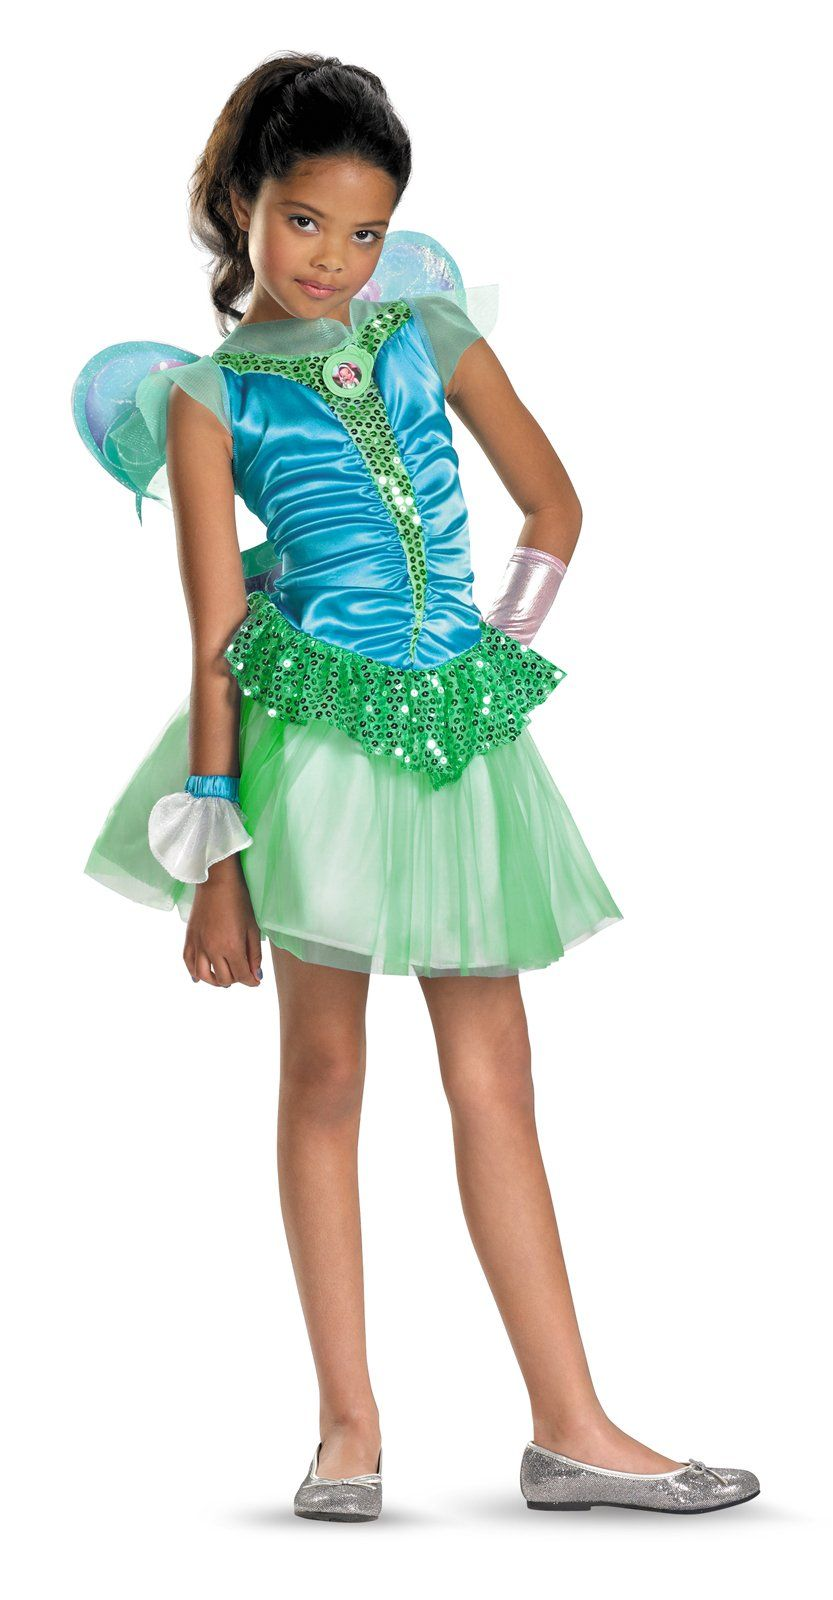 How to make a Winx costume for a girl with her own hands